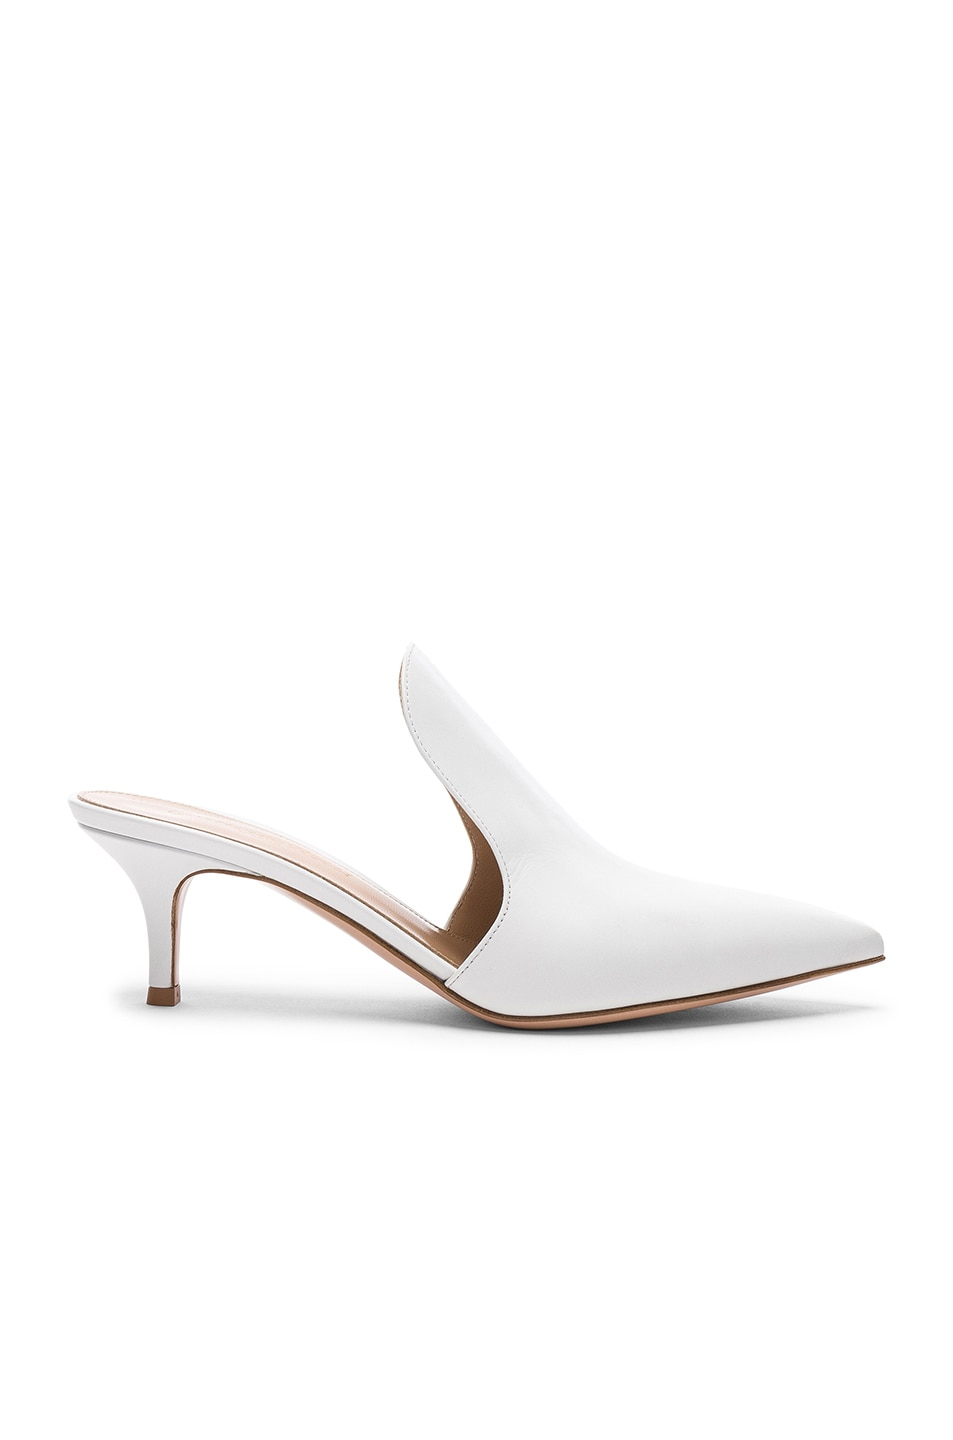 Image 1 of Gianvito Rossi Leather Aramis Kitten Heel Mules in White